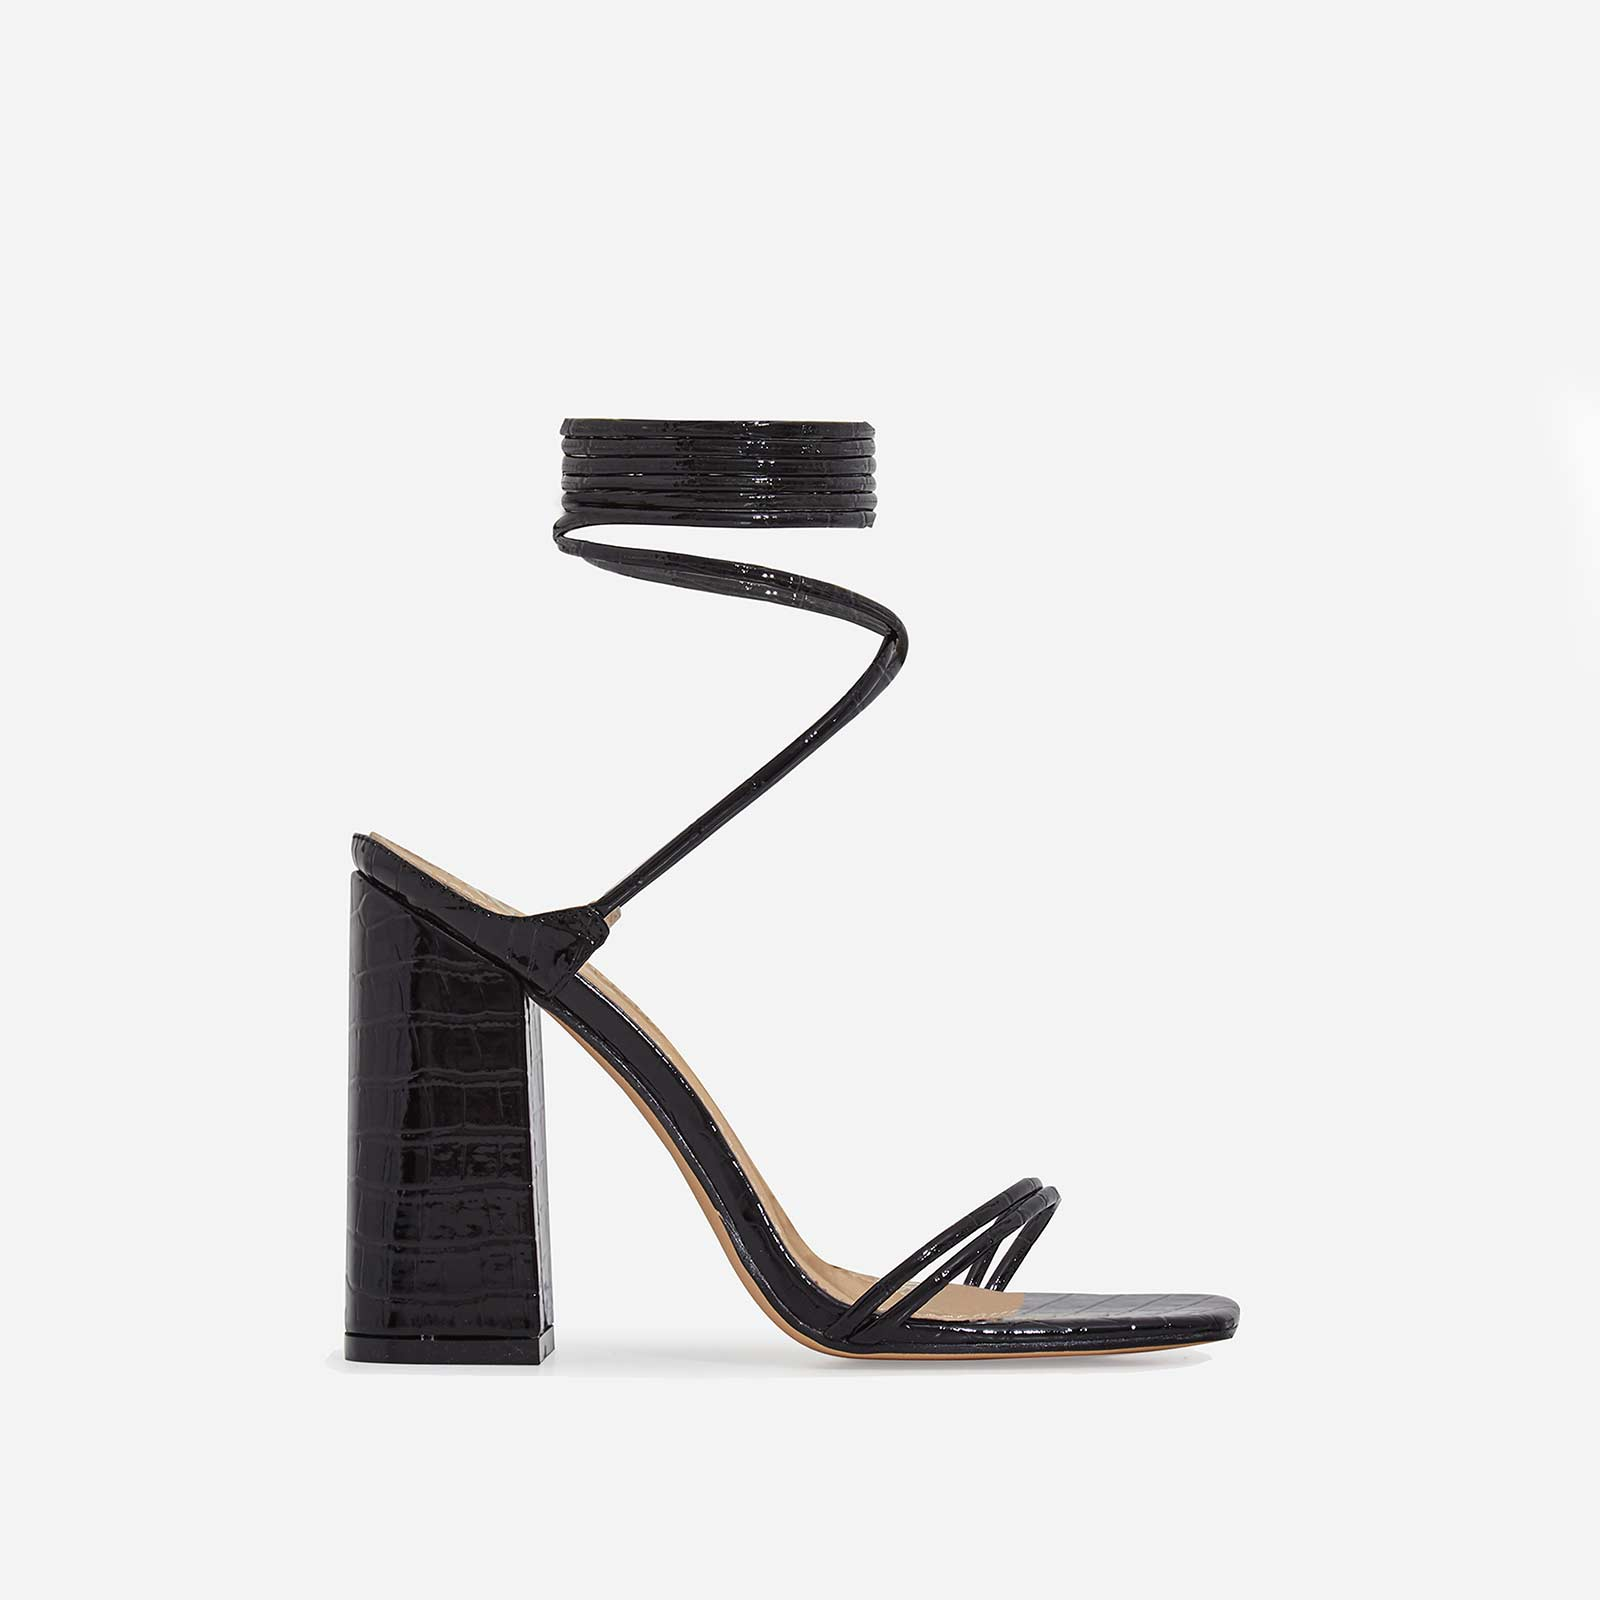 Leigh Lace Up Square Toe Block Heel In Black Croc Print Patent